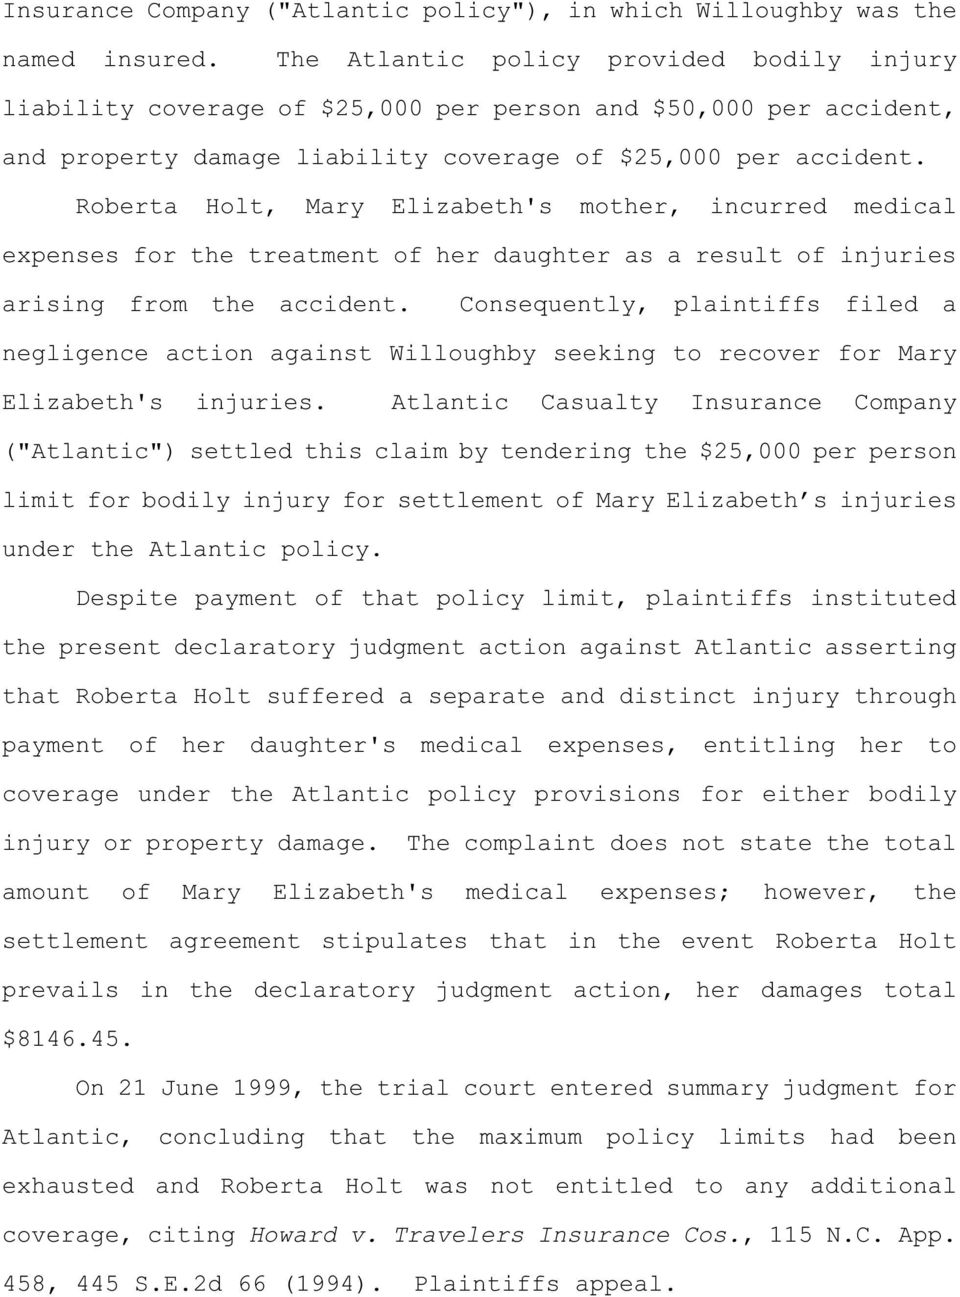 Roberta Holt, Mary Elizabeth's mother, incurred medical expenses for the treatment of her daughter as a result of injuries arising from the accident.